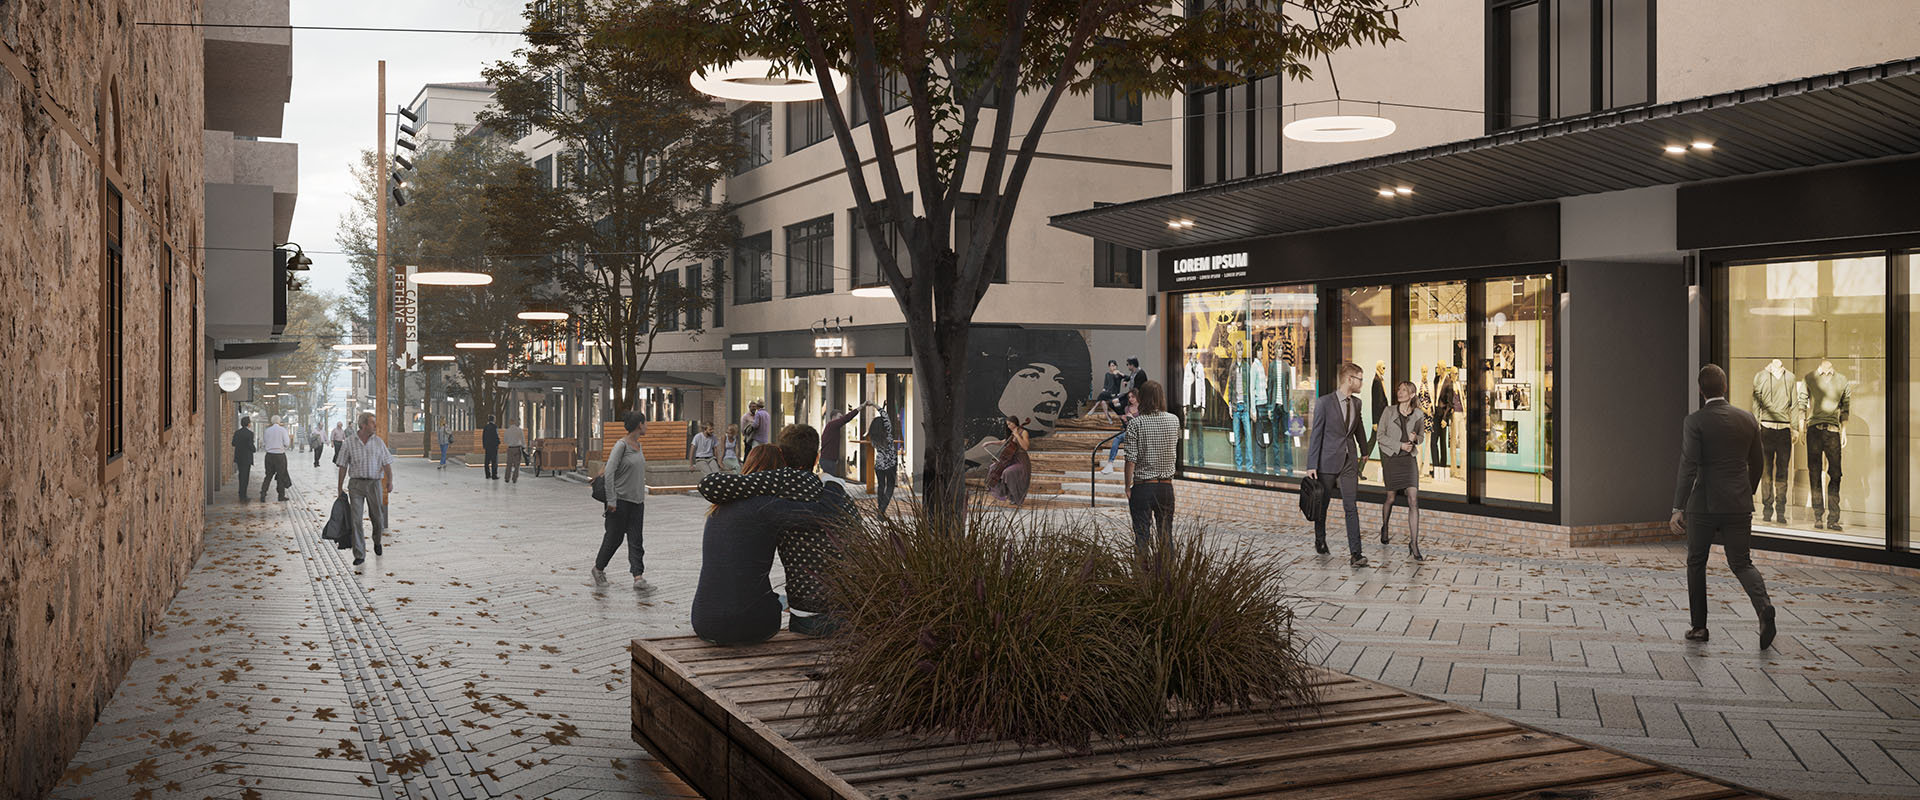 Fethiye Street Competition